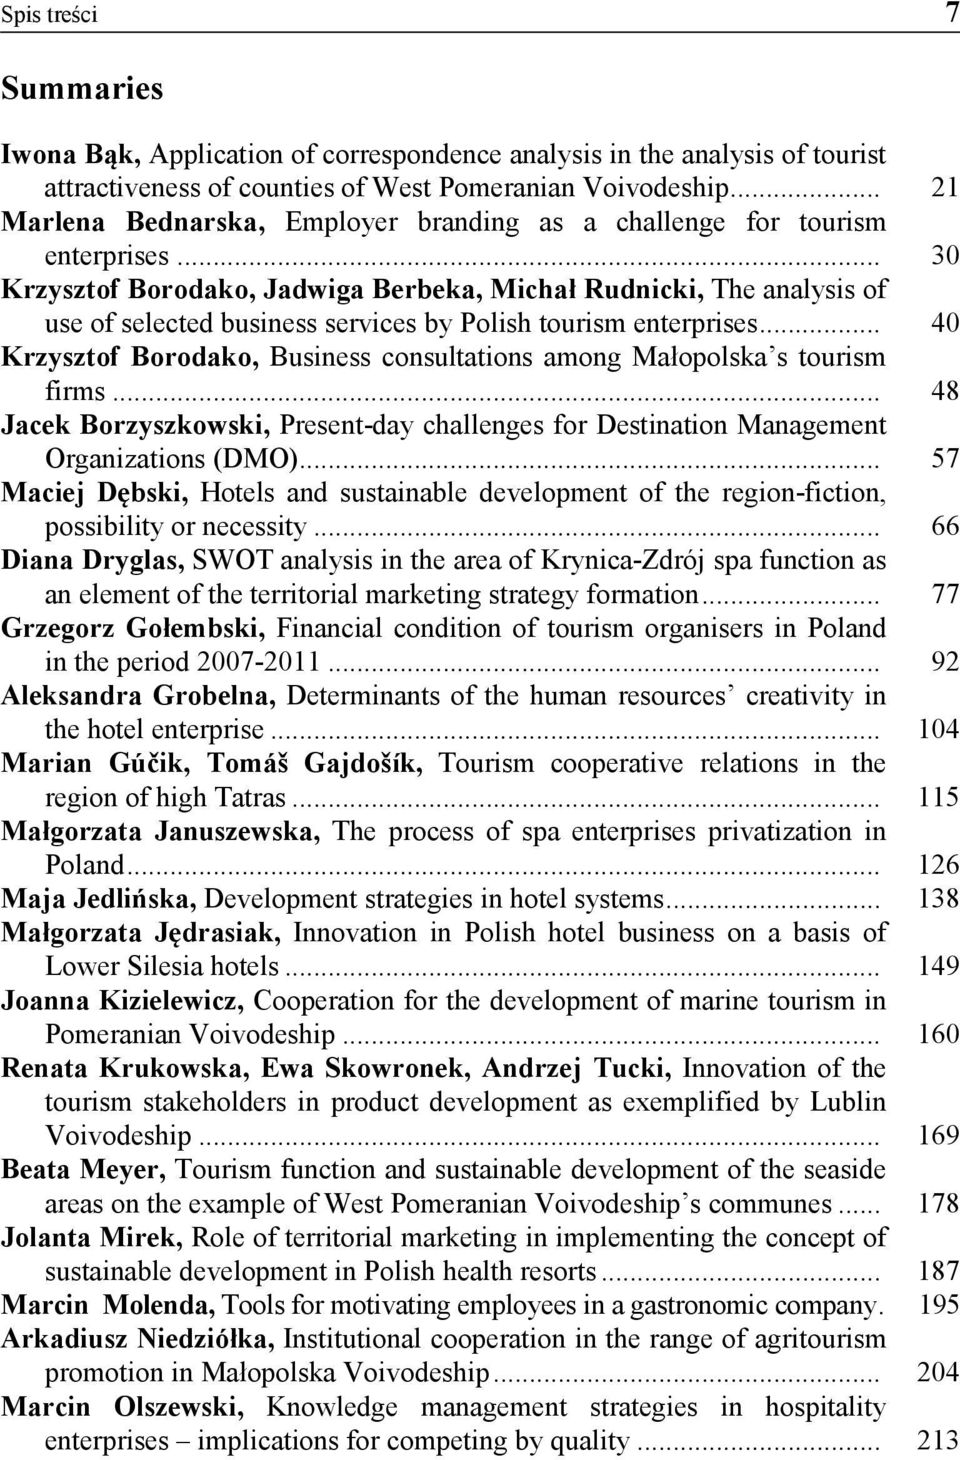 .. 30 Krzysztof Borodako, Jadwiga Berbeka, Michał Rudnicki, The analysis of use of selected business services by Polish tourism enterprises.